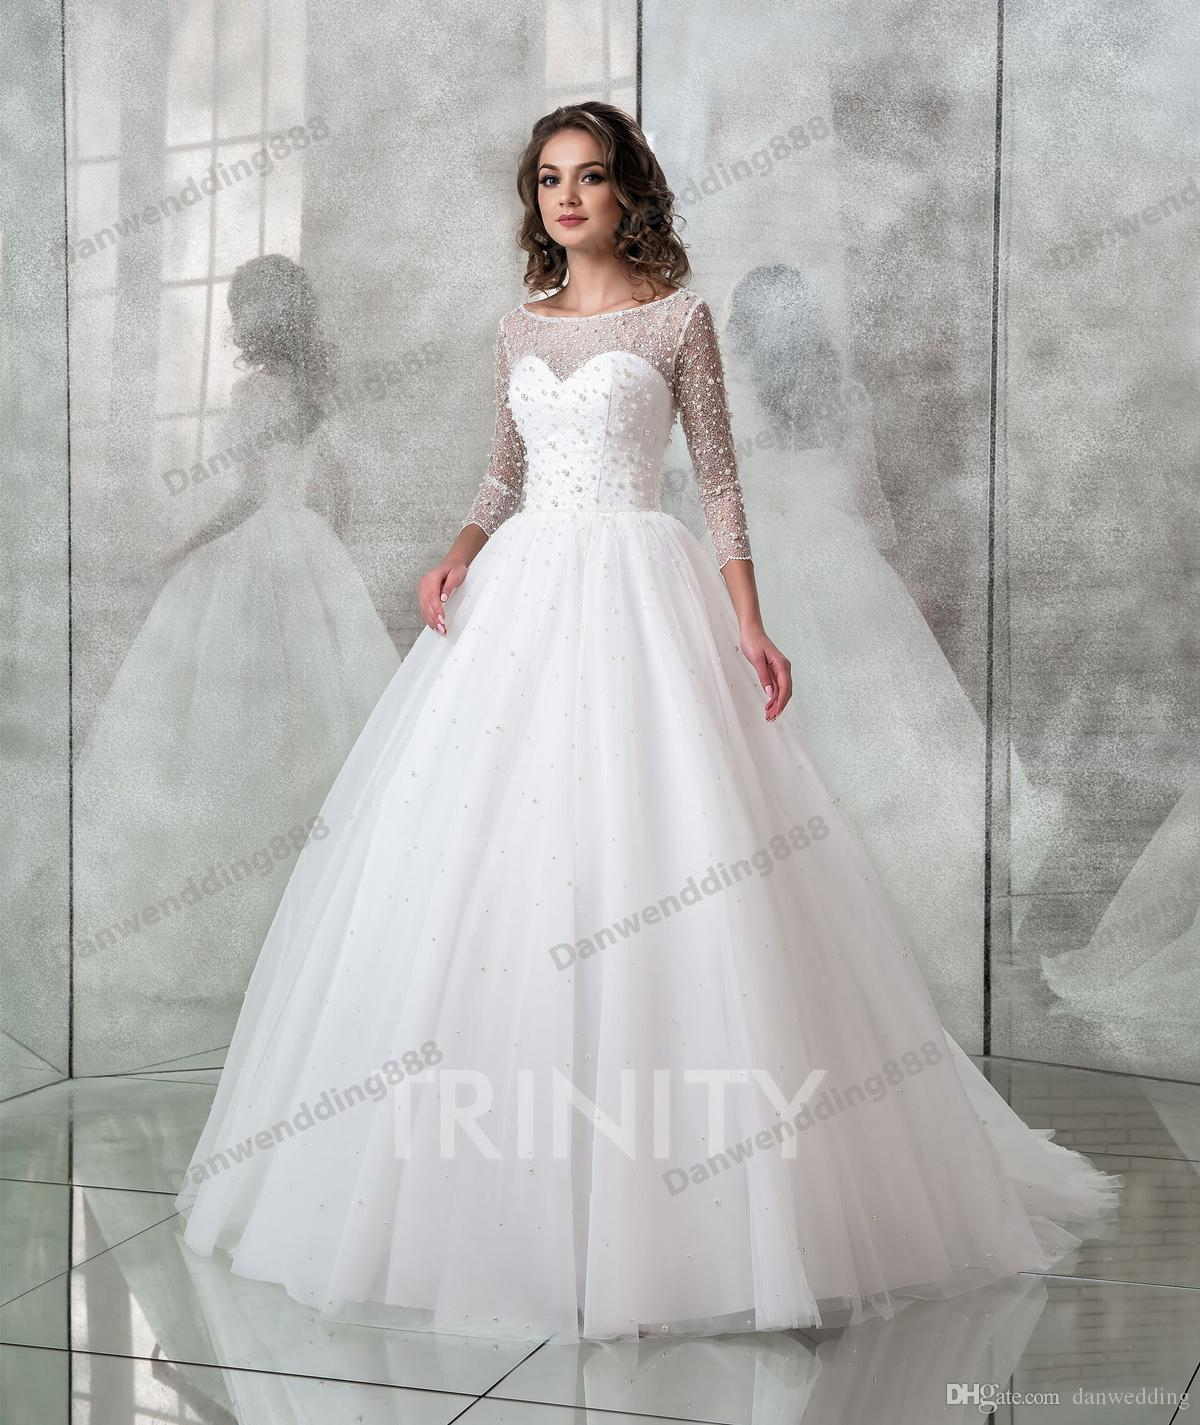 fad4402fa1 Discount Beauty White Tulle 3/4 Sleeves Lace Beads A Line Wedding Dresses  Bridal Pageant Dresses Wedding Attire Dresses Custom Size 2 16 ZW712171  Modest ...